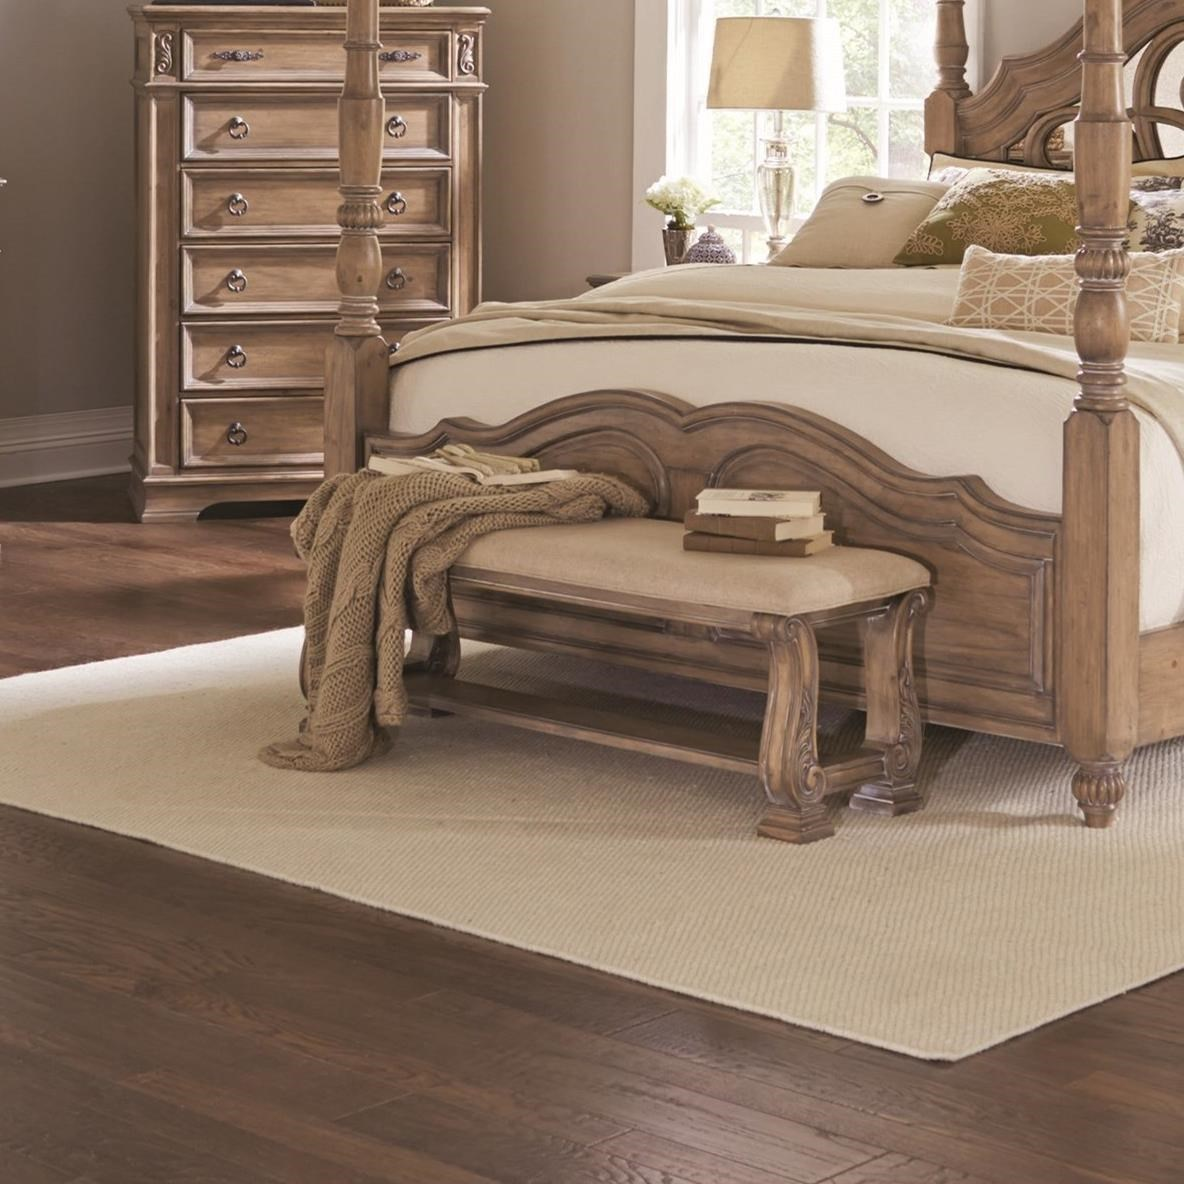 Ilana Collection 205070 Traditional Upholstered Storage Bedroom ...